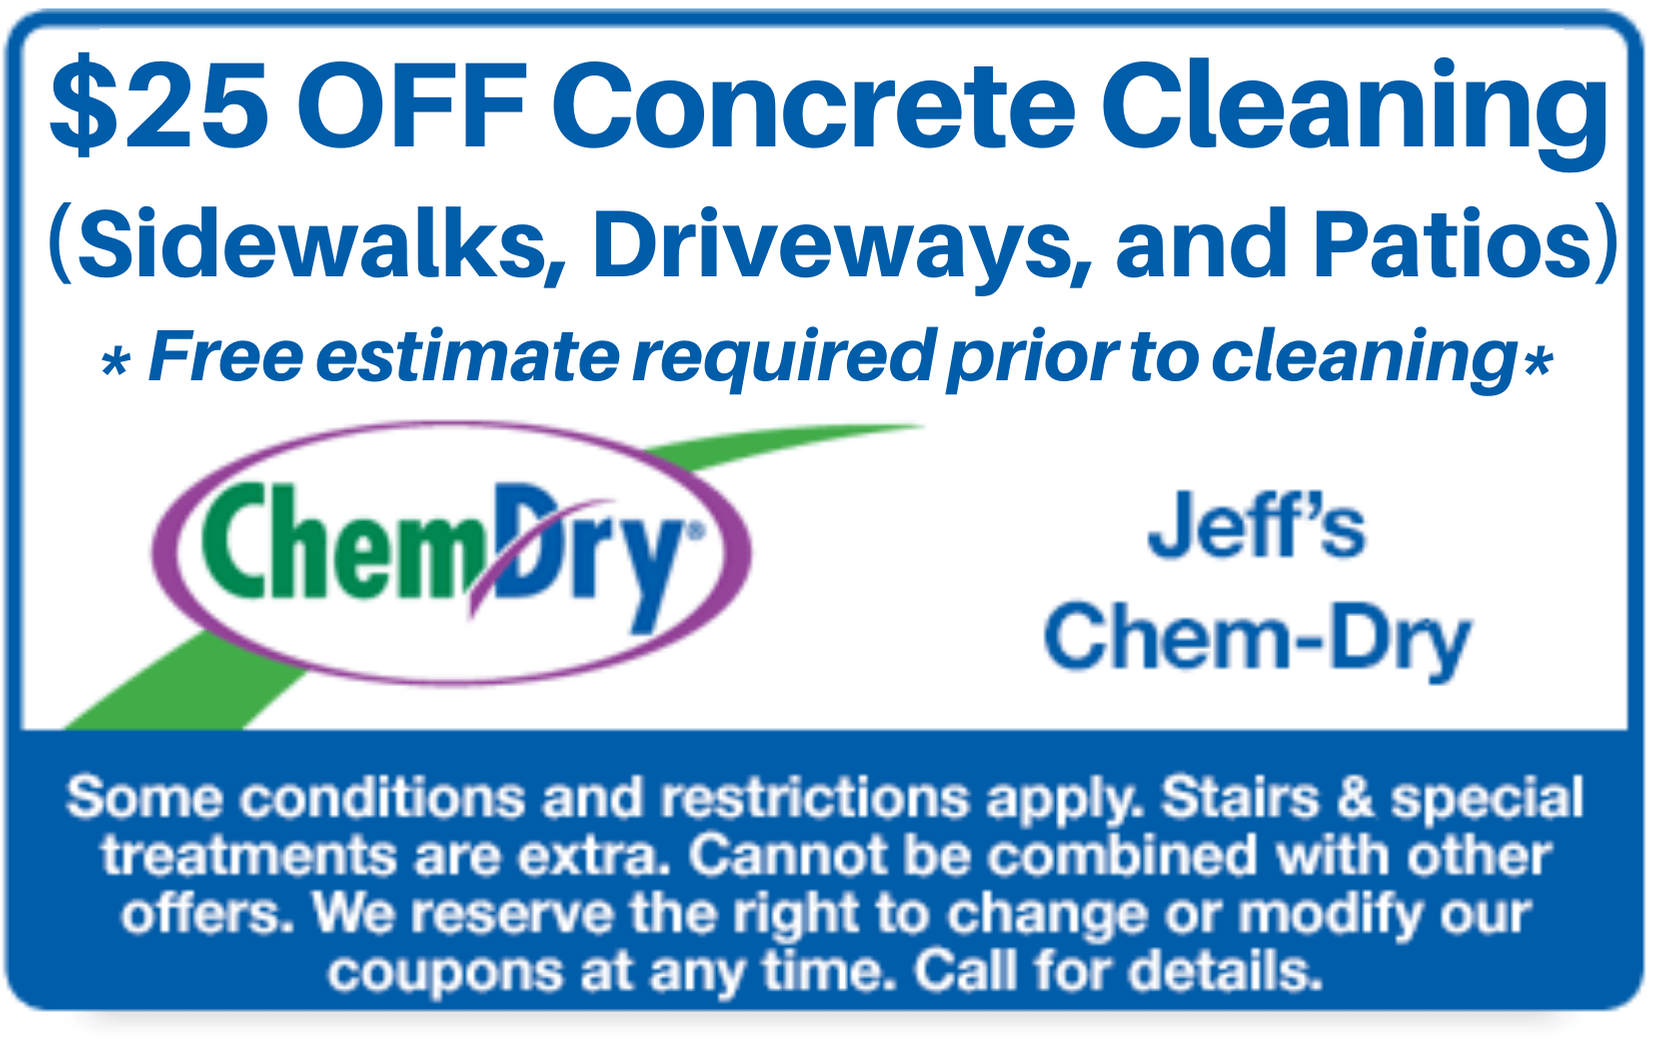 $25 off concrete cleaning coupon